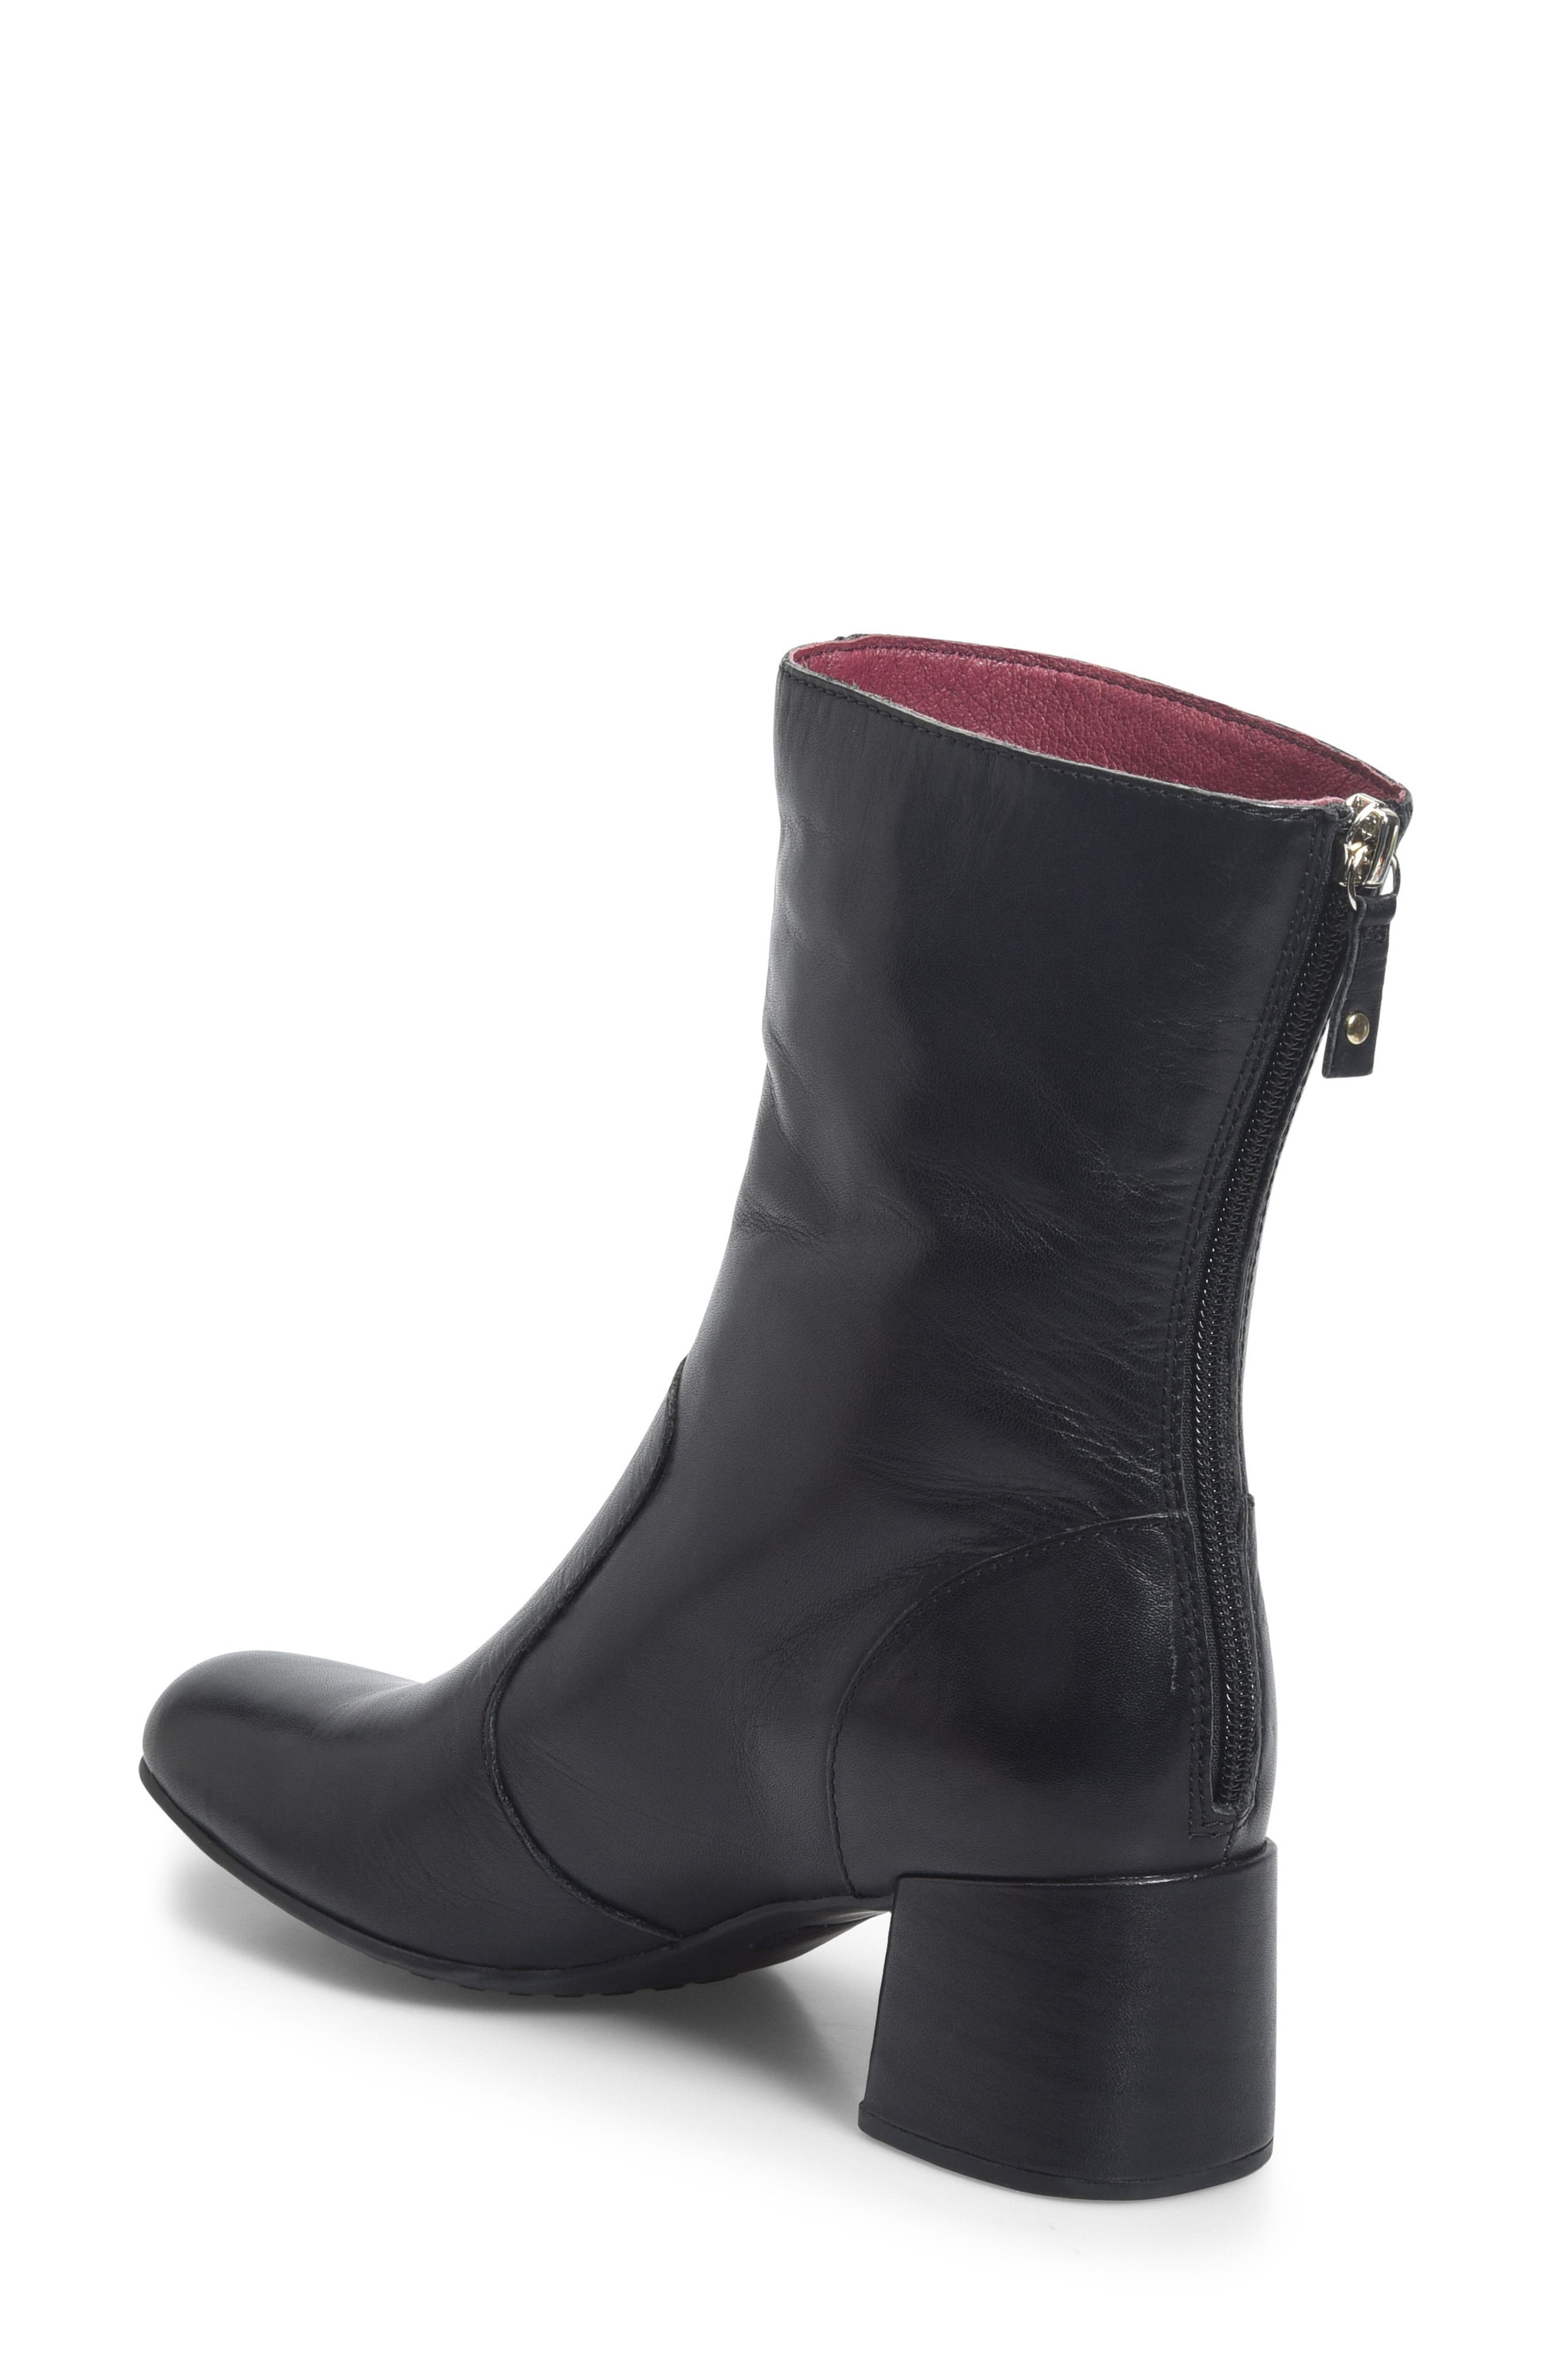 Florence Bootie,                             Alternate thumbnail 2, color,                             BLACK LEATHER